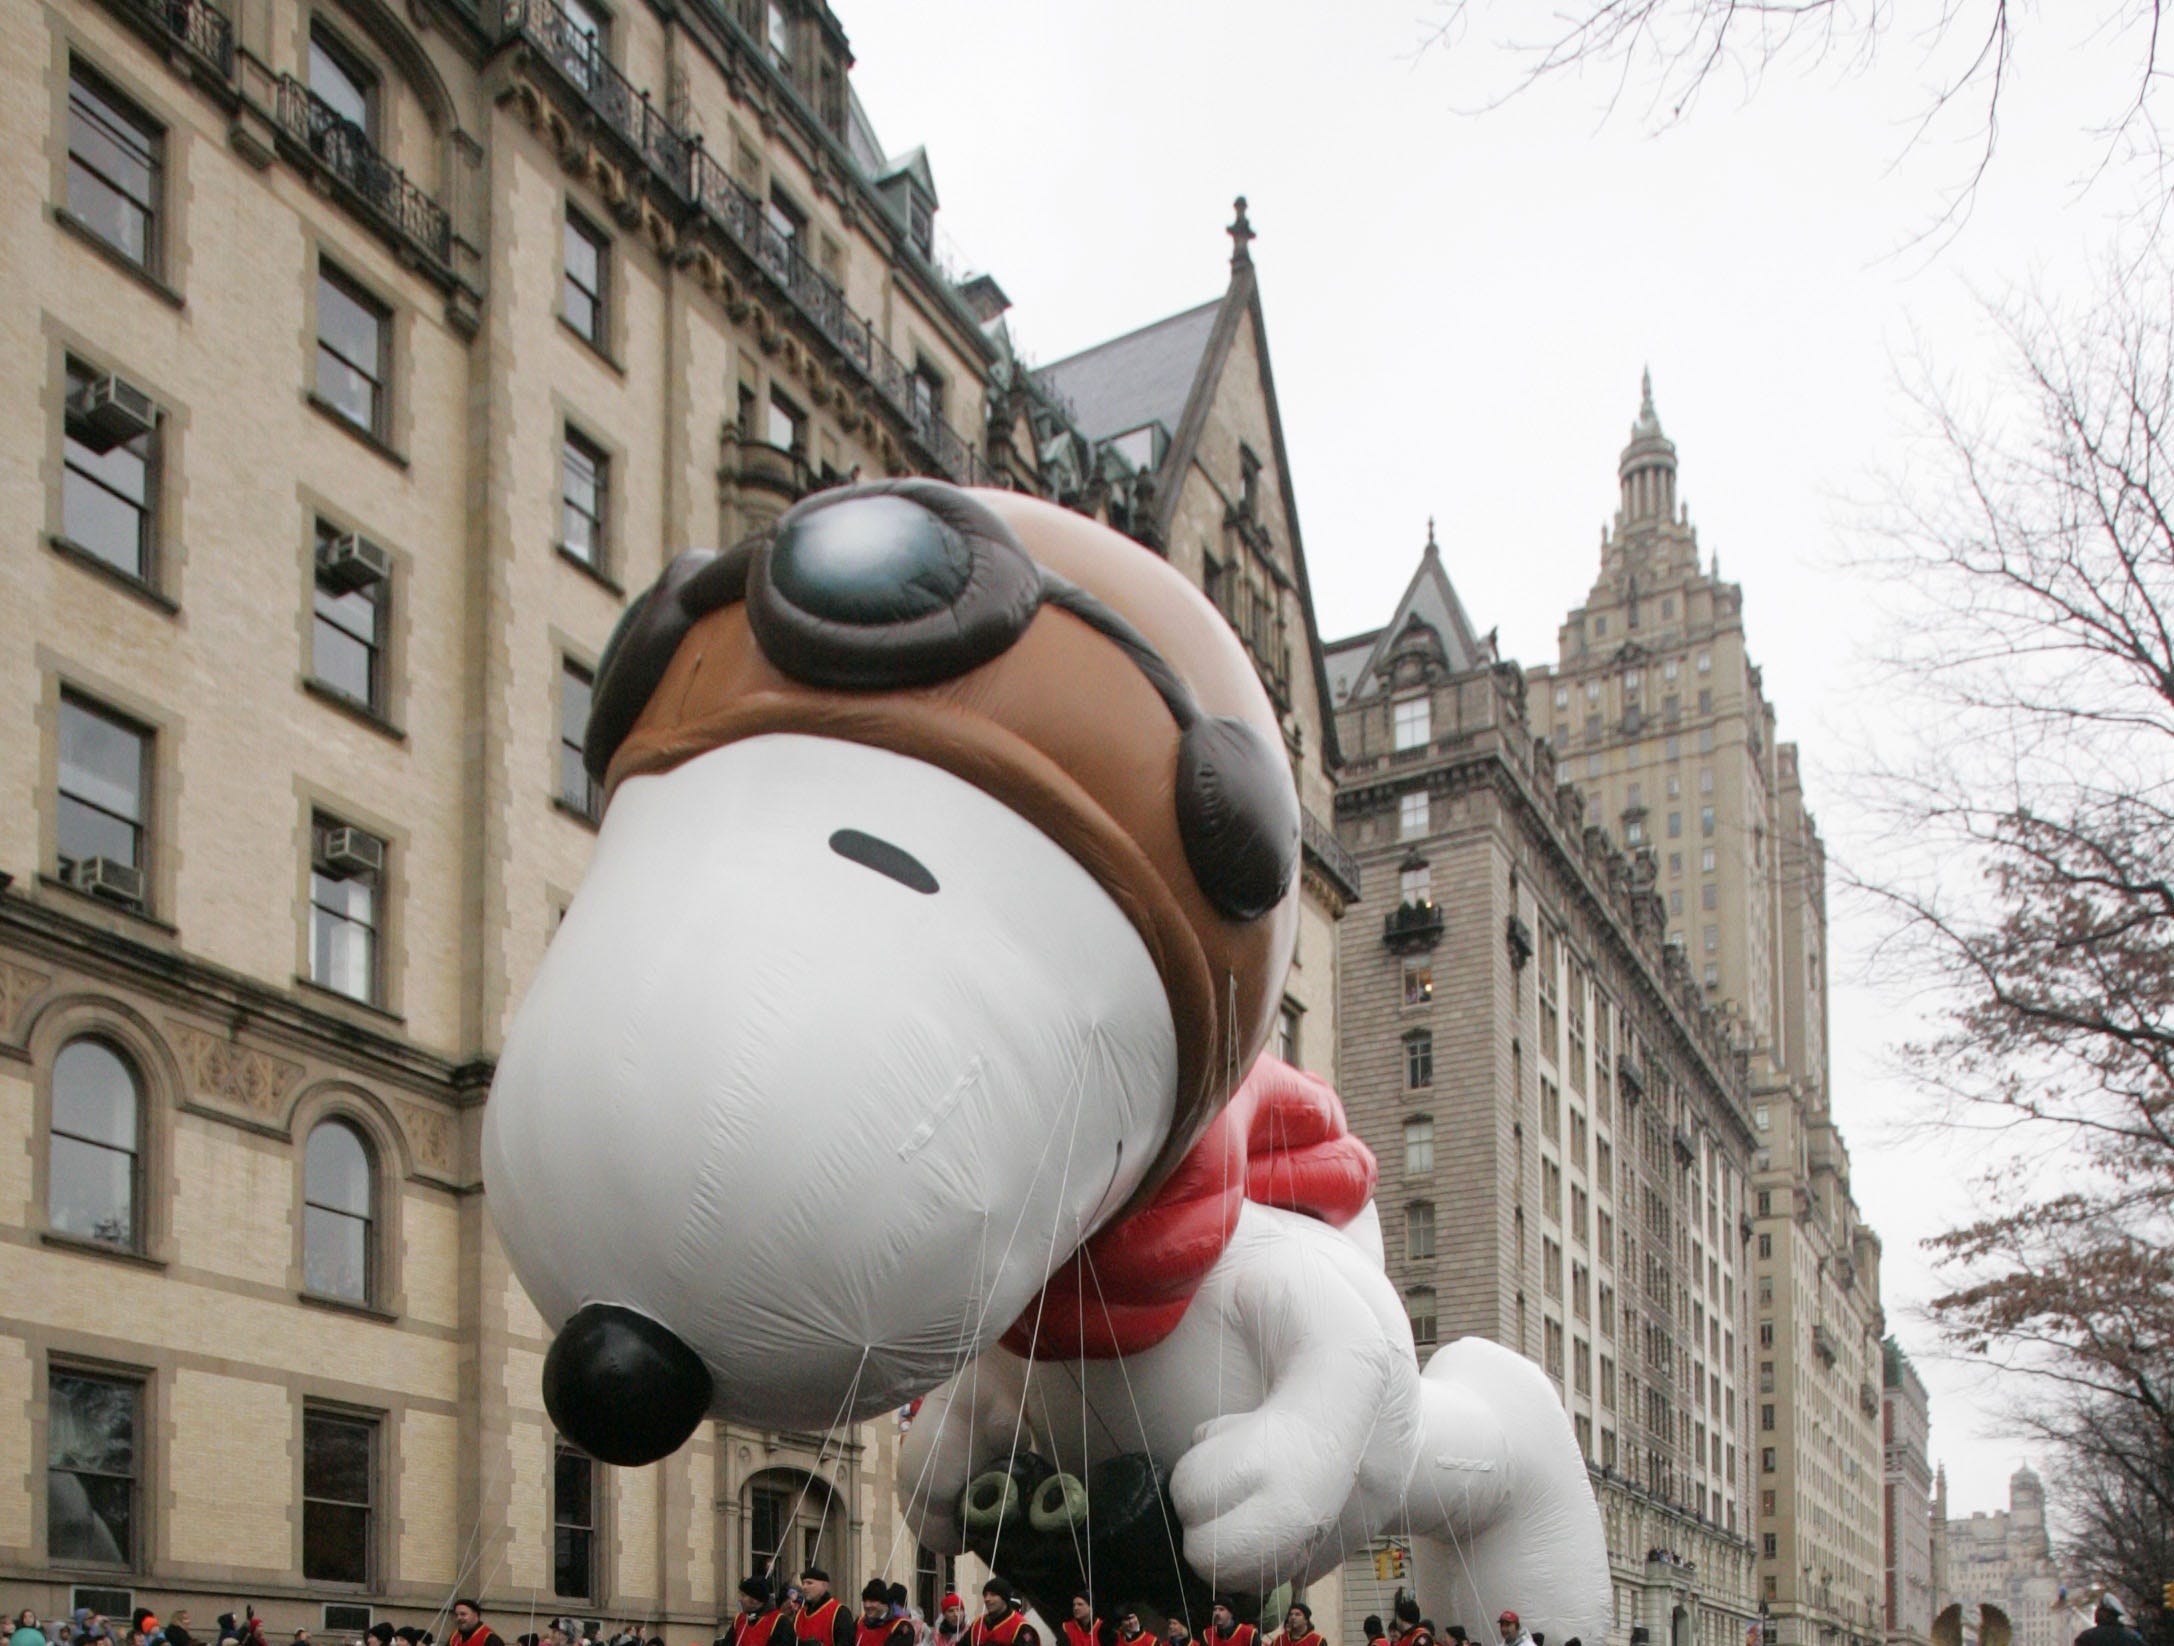 The Snoopy balloon makes its way down Central Park West at the start of the Macy's Thanksgiving Day Parade Thursday, Nov. 23, 2006 in New York. (AP Photo/Julie Jacobson)